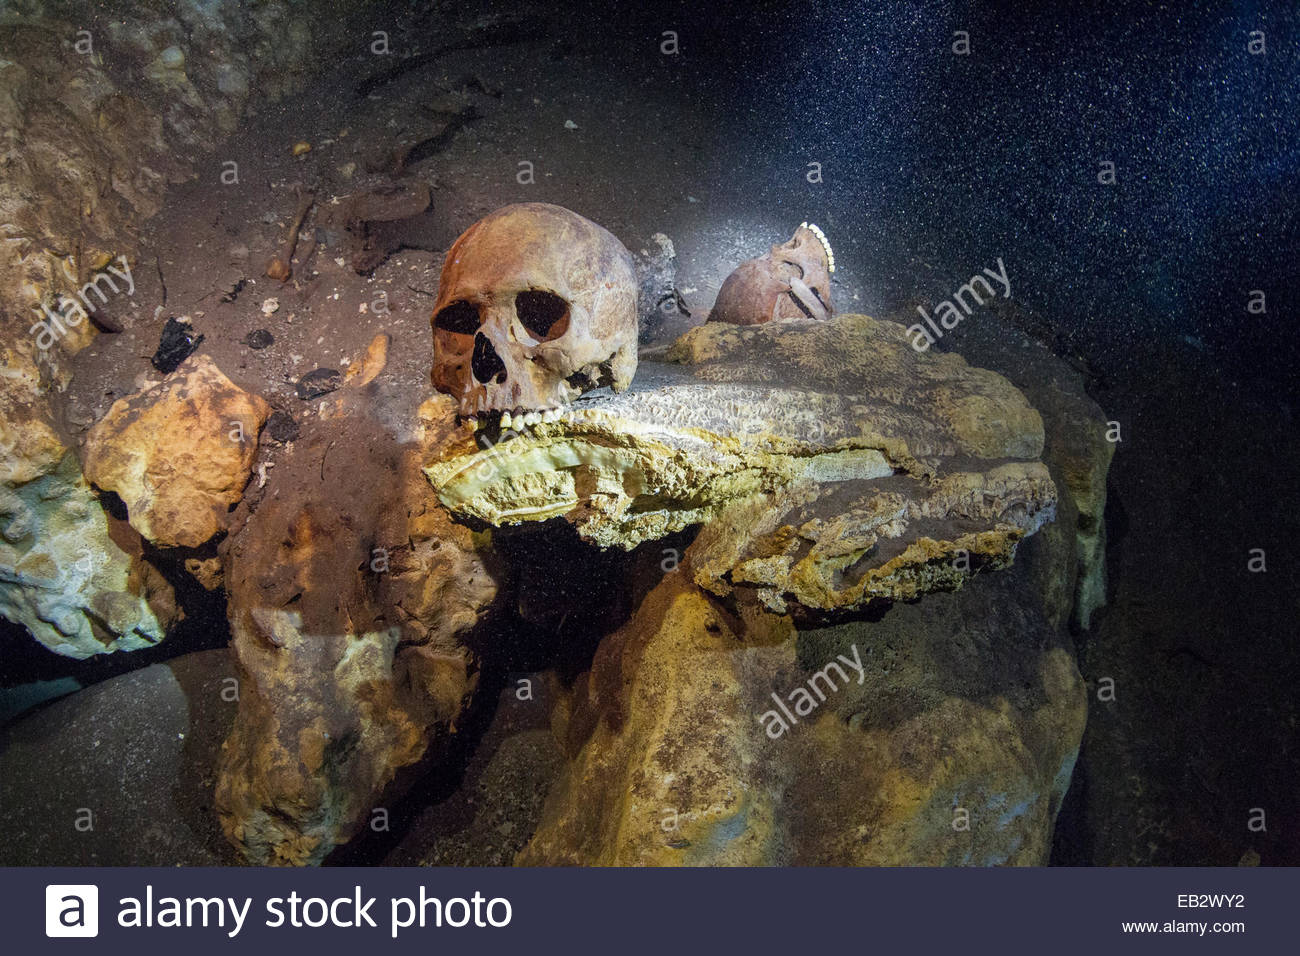 Mayan and animal skulls and bones found in a sacred cenote. - Stock Image